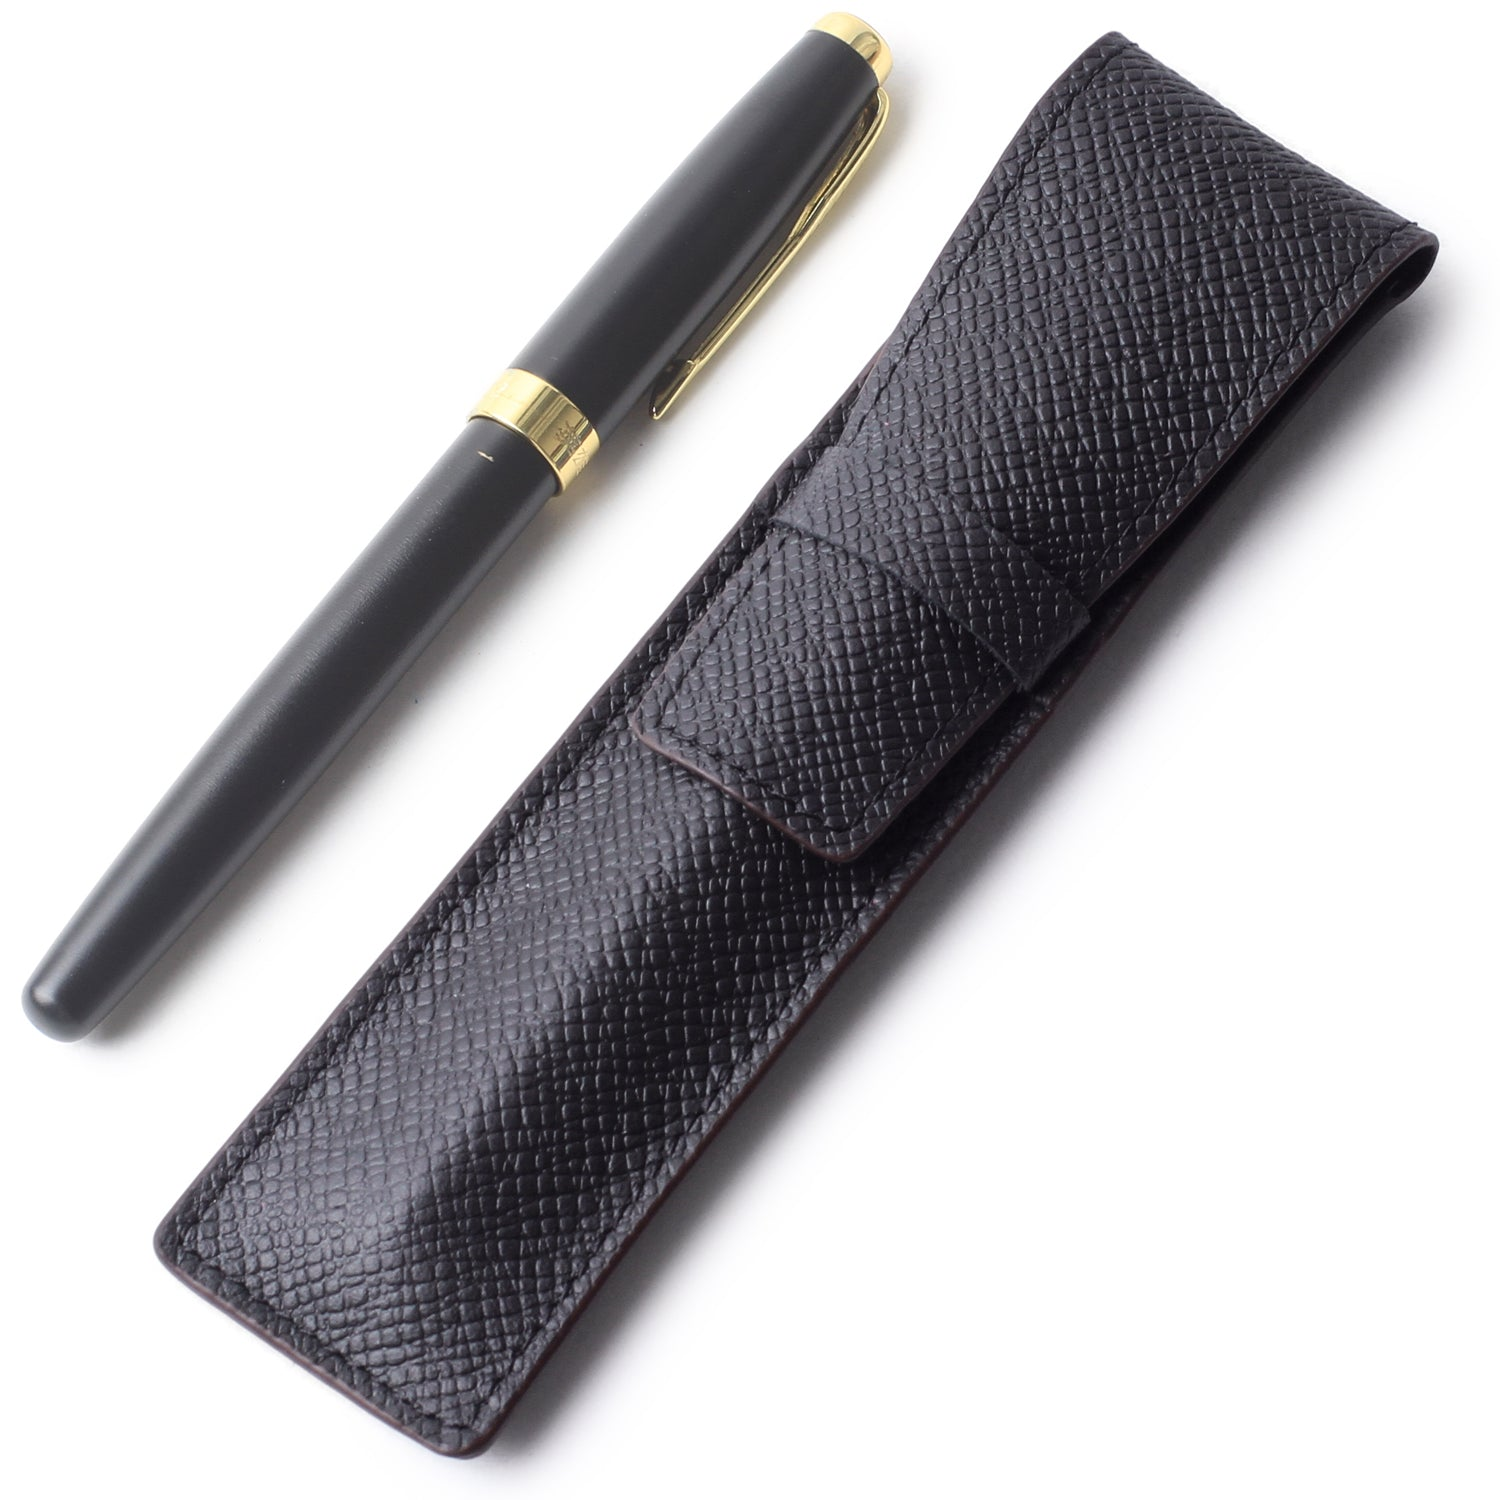 Borgasets Full Grain Leather Single Pen Case Holder Pencil Bag for Men Women Black - Borgasets